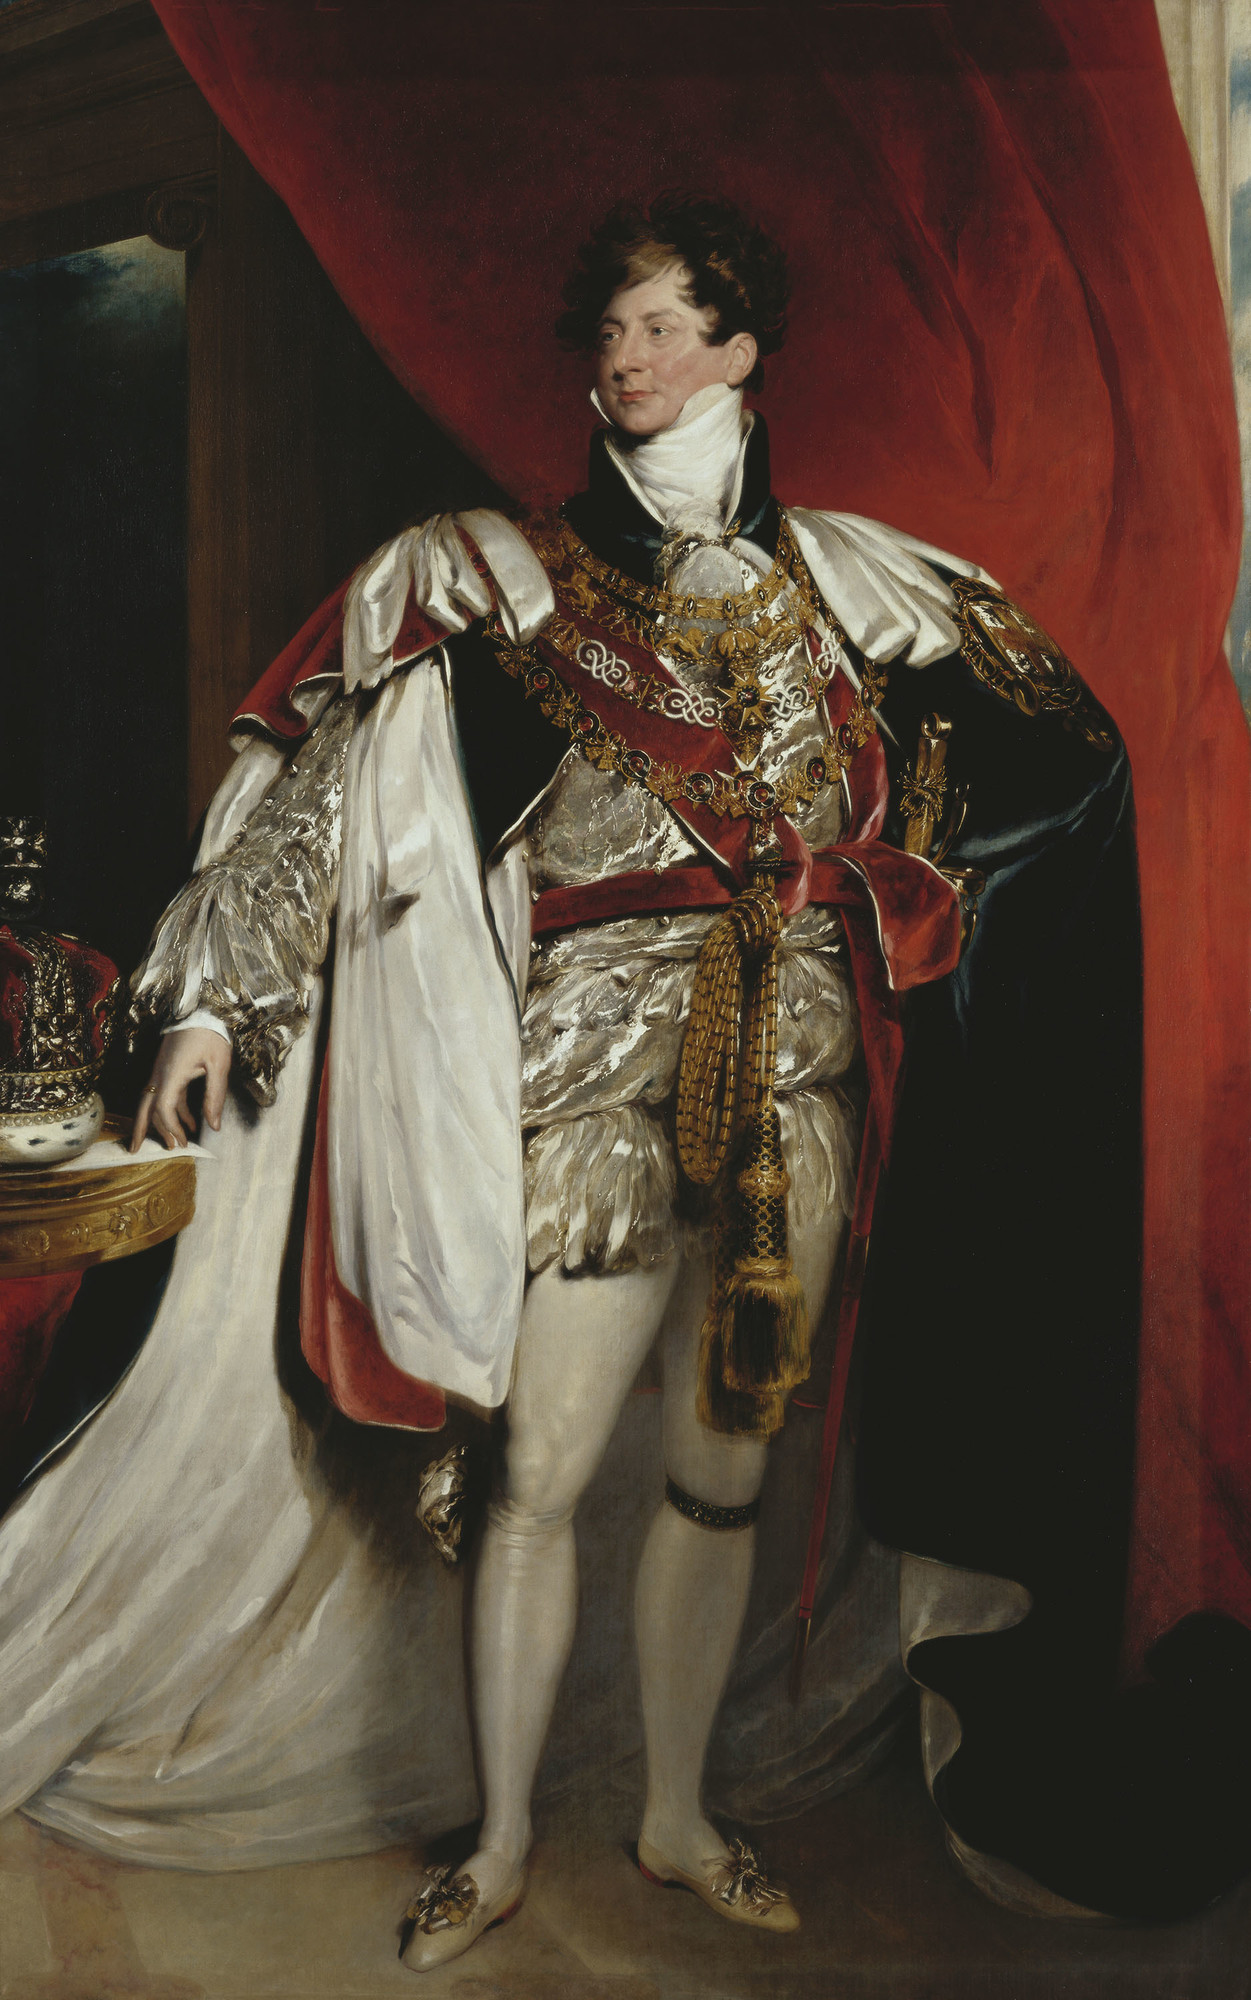 The Prince Regent, later King George IV